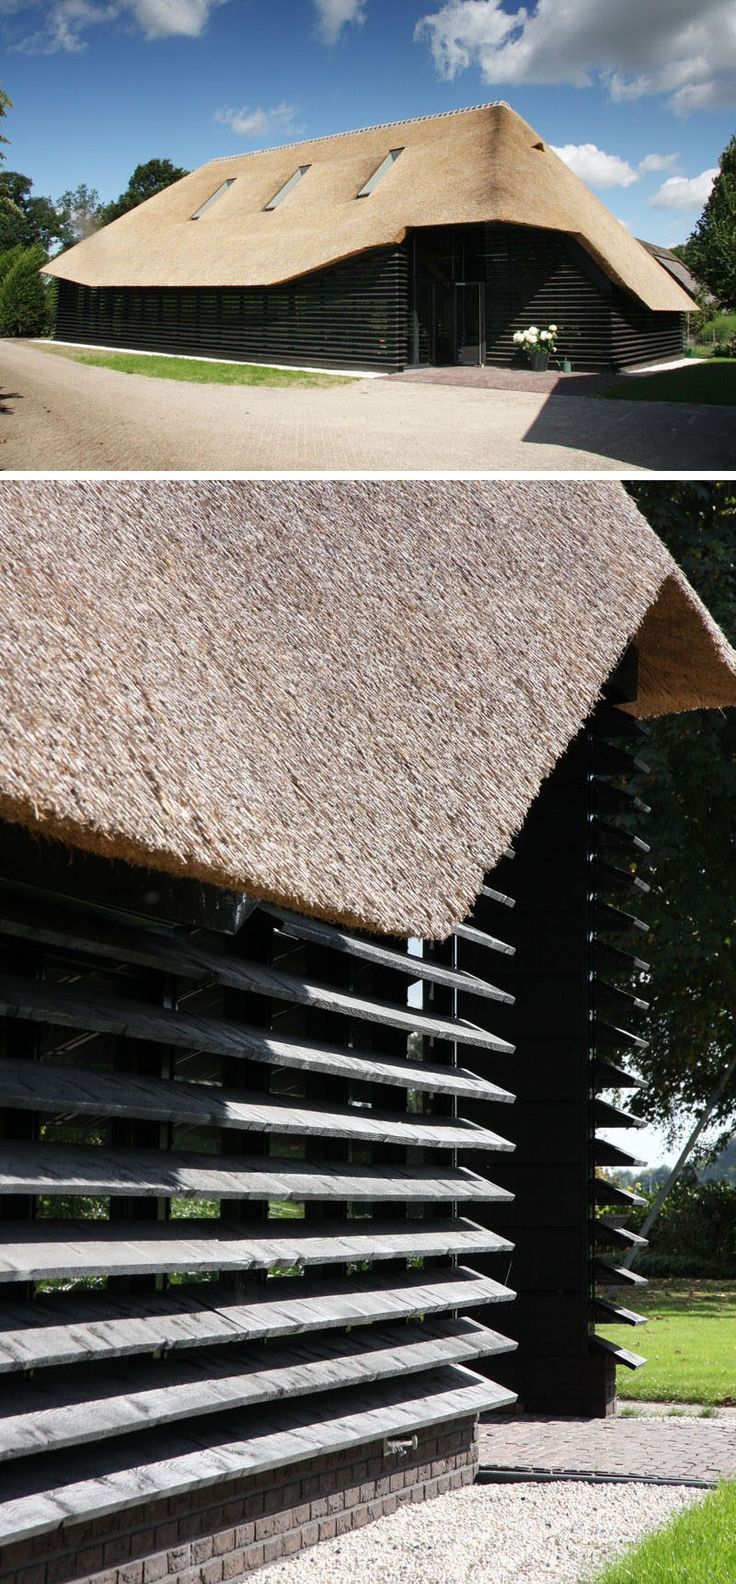 12 examples of modern houses and buildings that have a thatched roof - Thatch Roof Designs